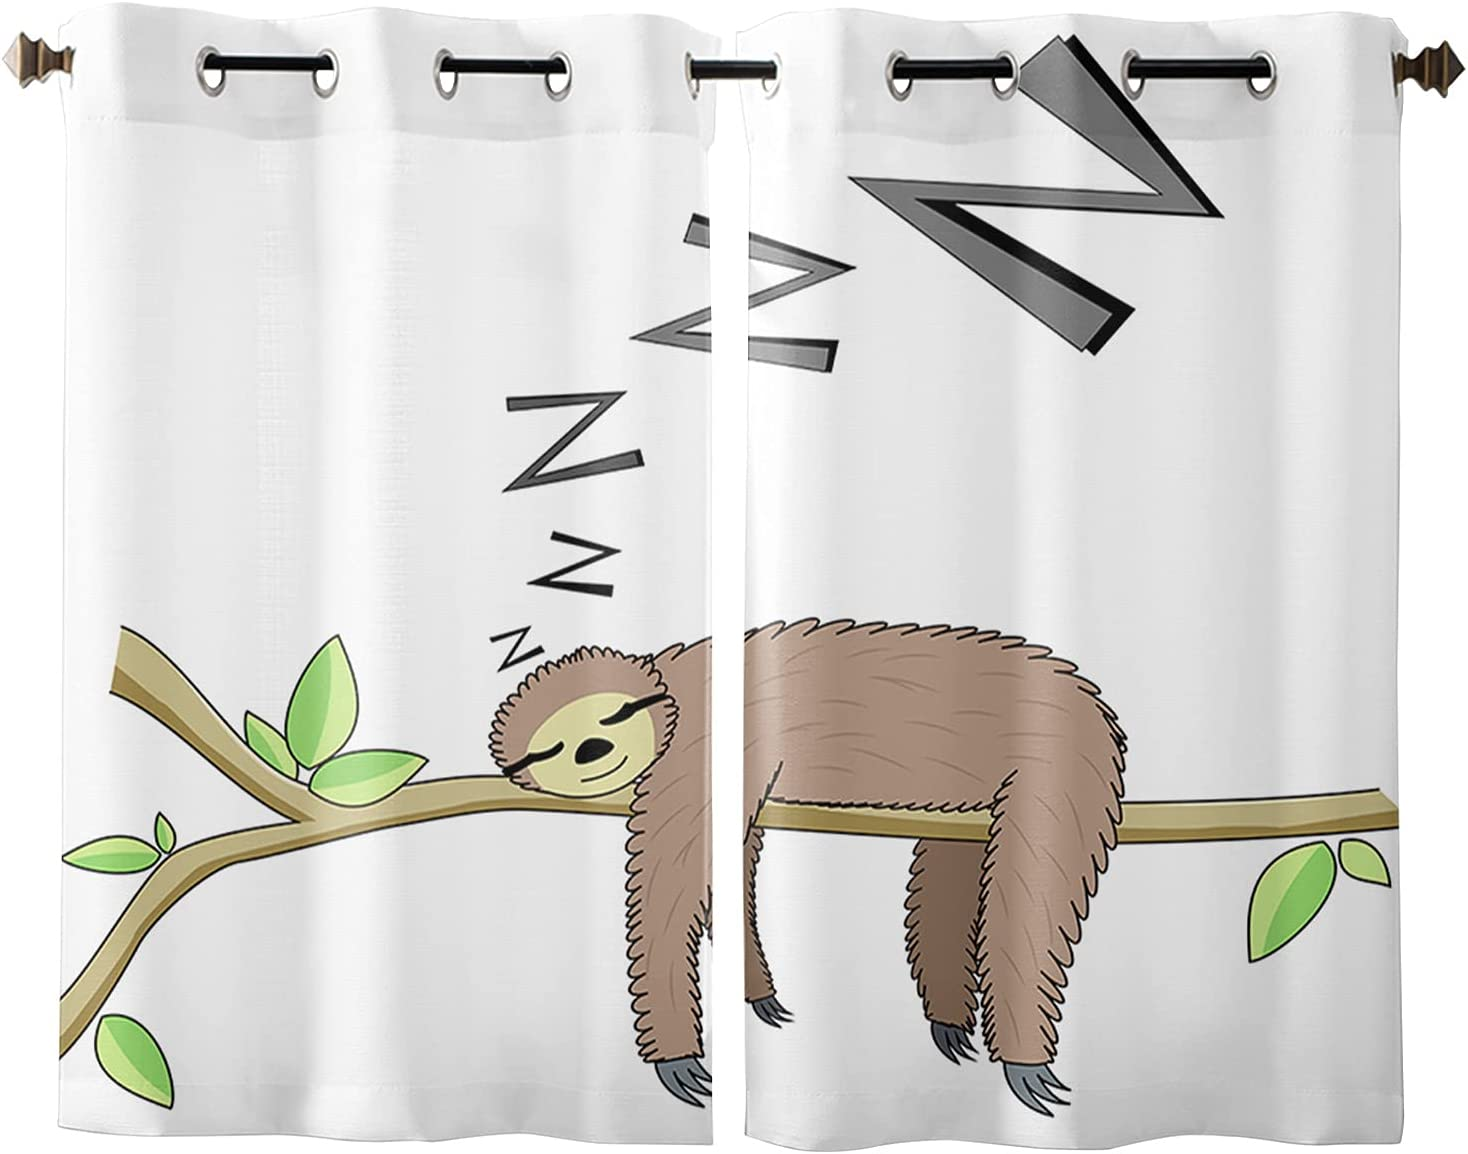 Window Curtain Deluxe Panels Set Lowest price challenge of 2 Livi Curtains for Drapes Grommet